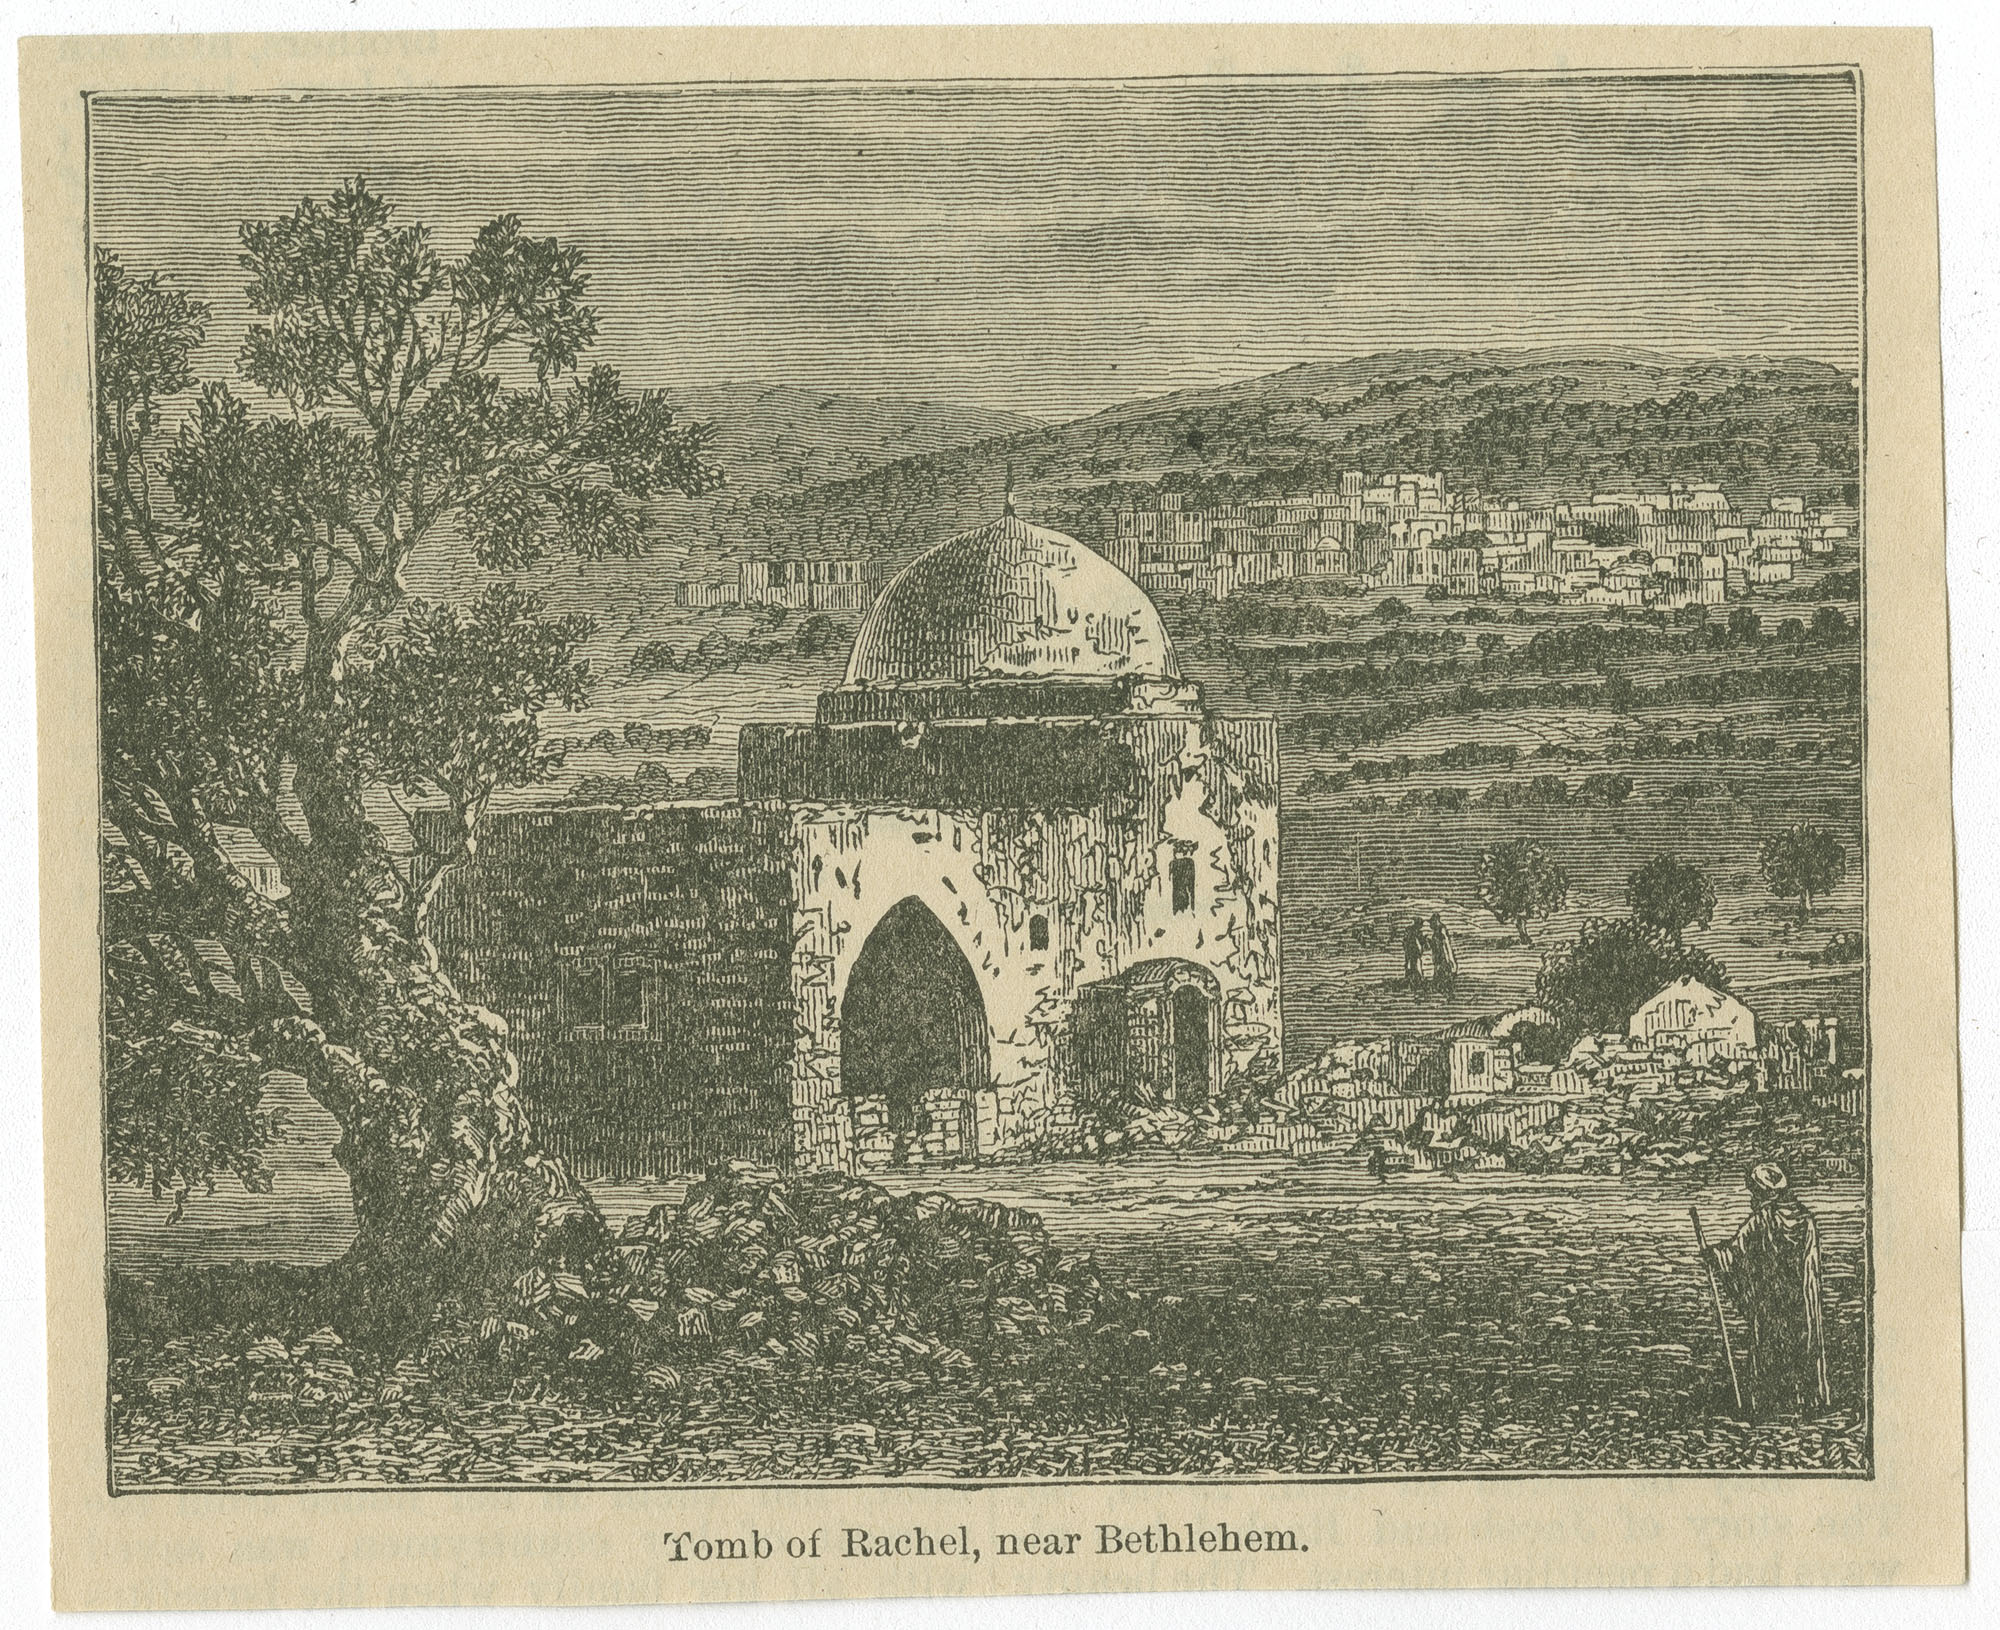 Tomb of Rachel, near Bethlehem